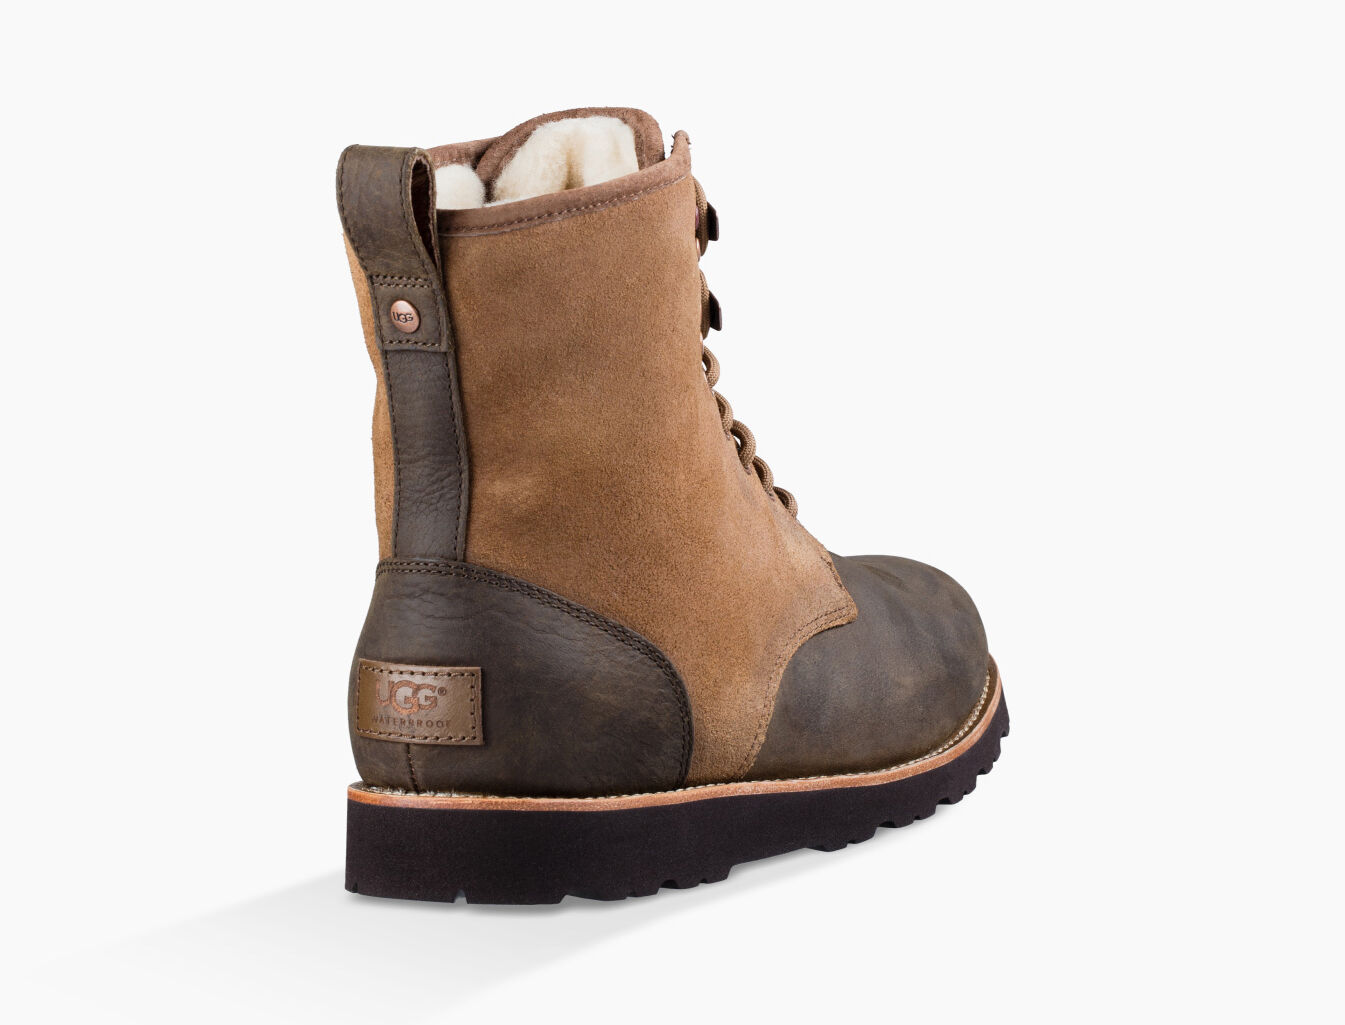 ugg hannen tl review